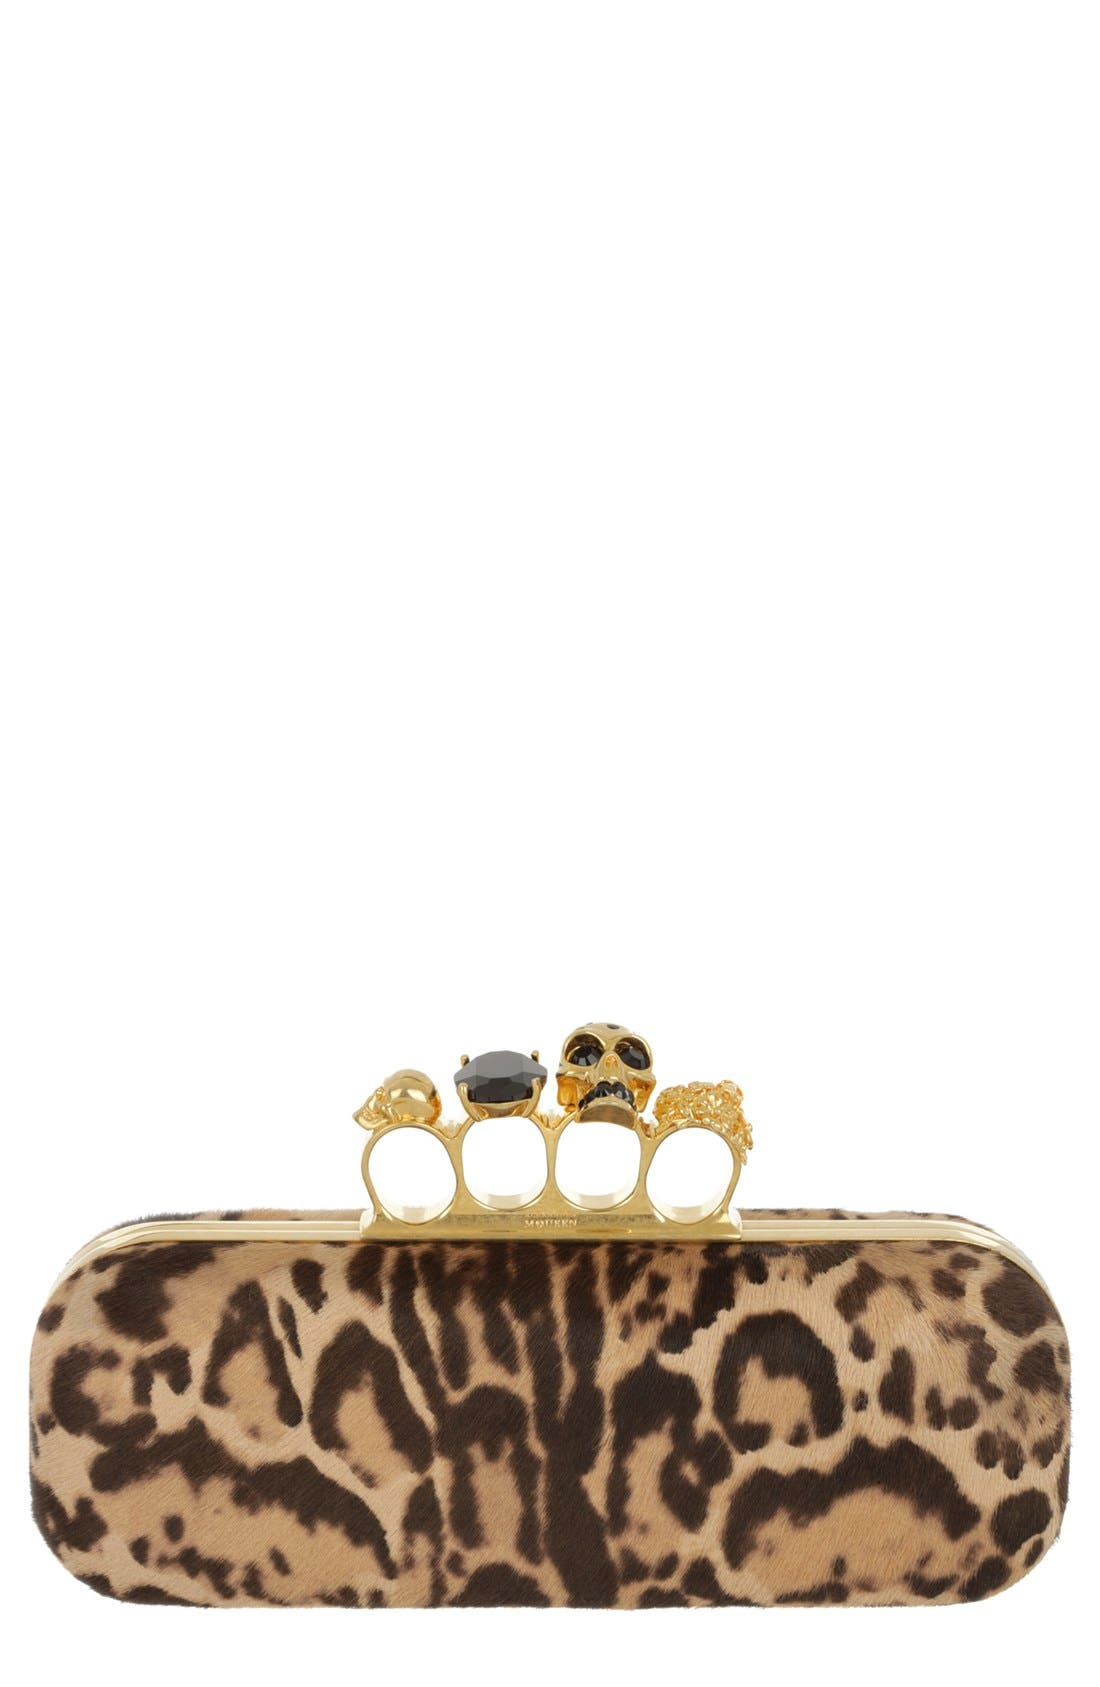 Main Image - Alexander McQueen 'Knucklebox' Leopard Print Calf Hair Clutch